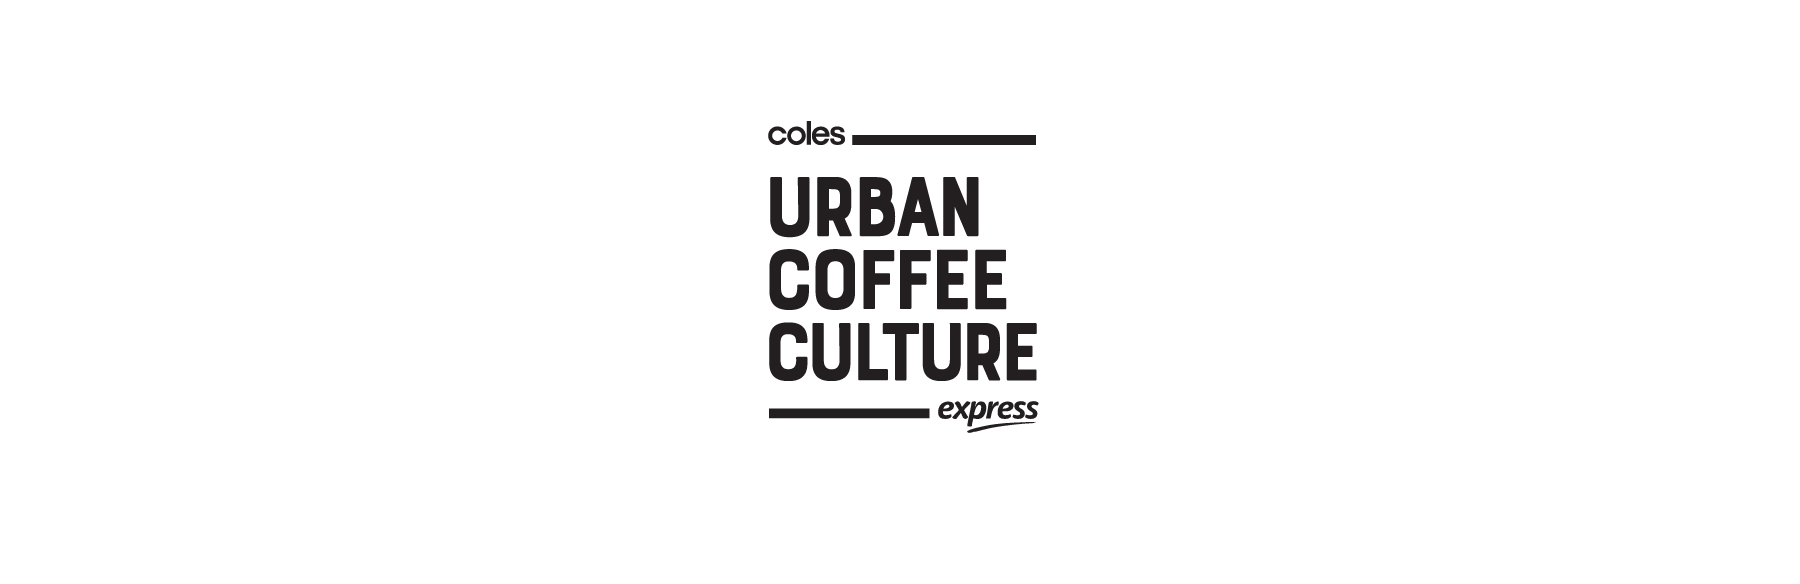 Coles Express Urban Coffee Culture